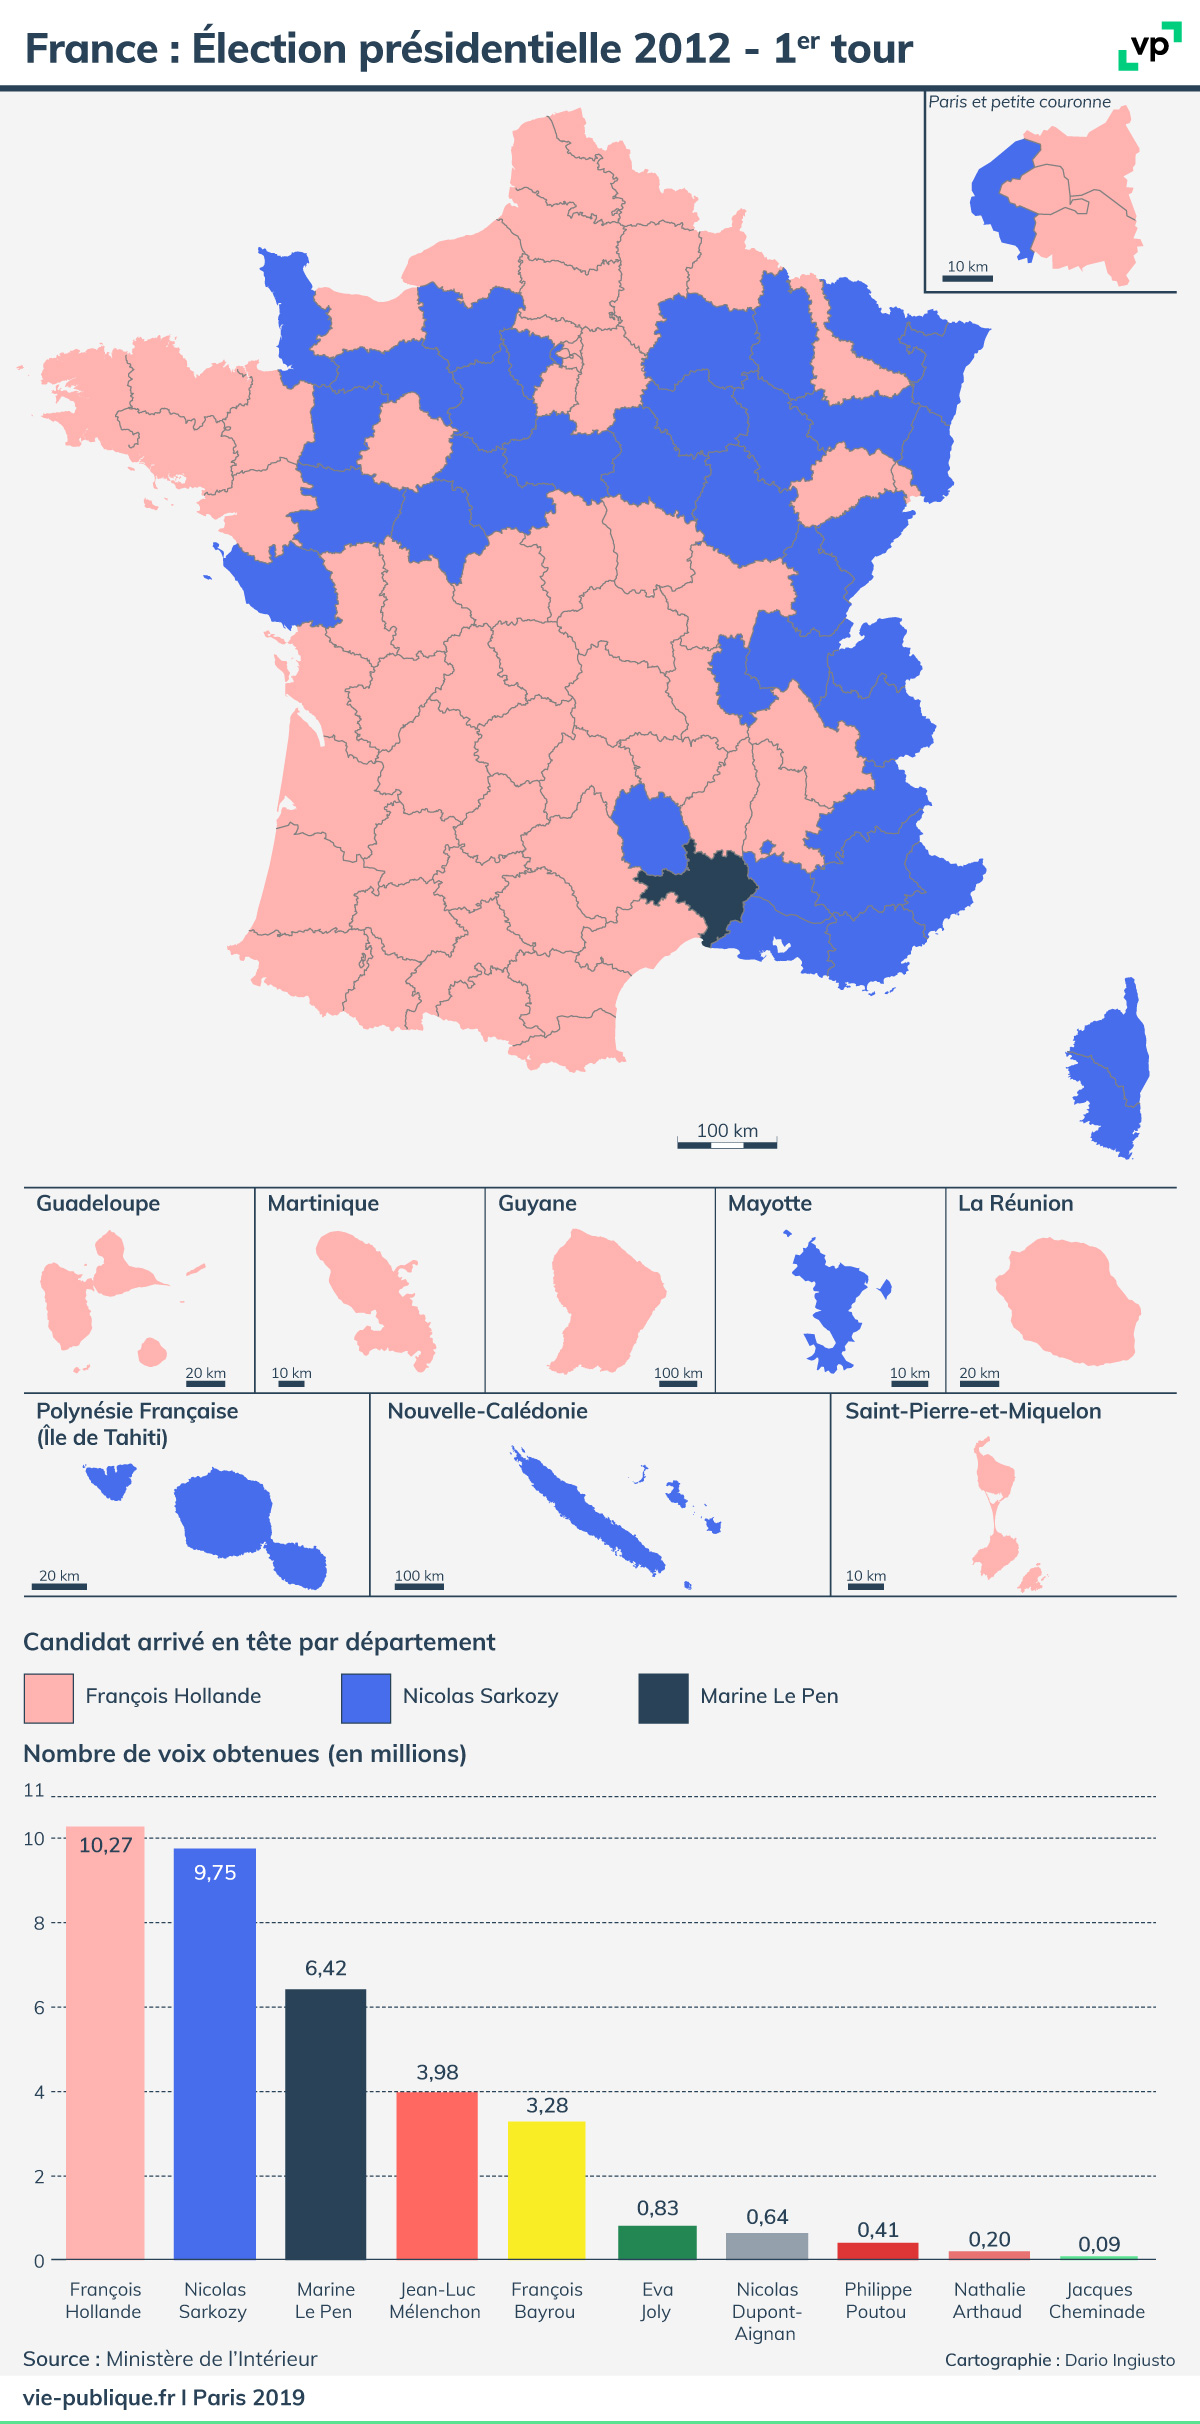 election presidentielle 2020 carte de france France : Élection présidentielle 2012   premier tour | Vie publique.fr